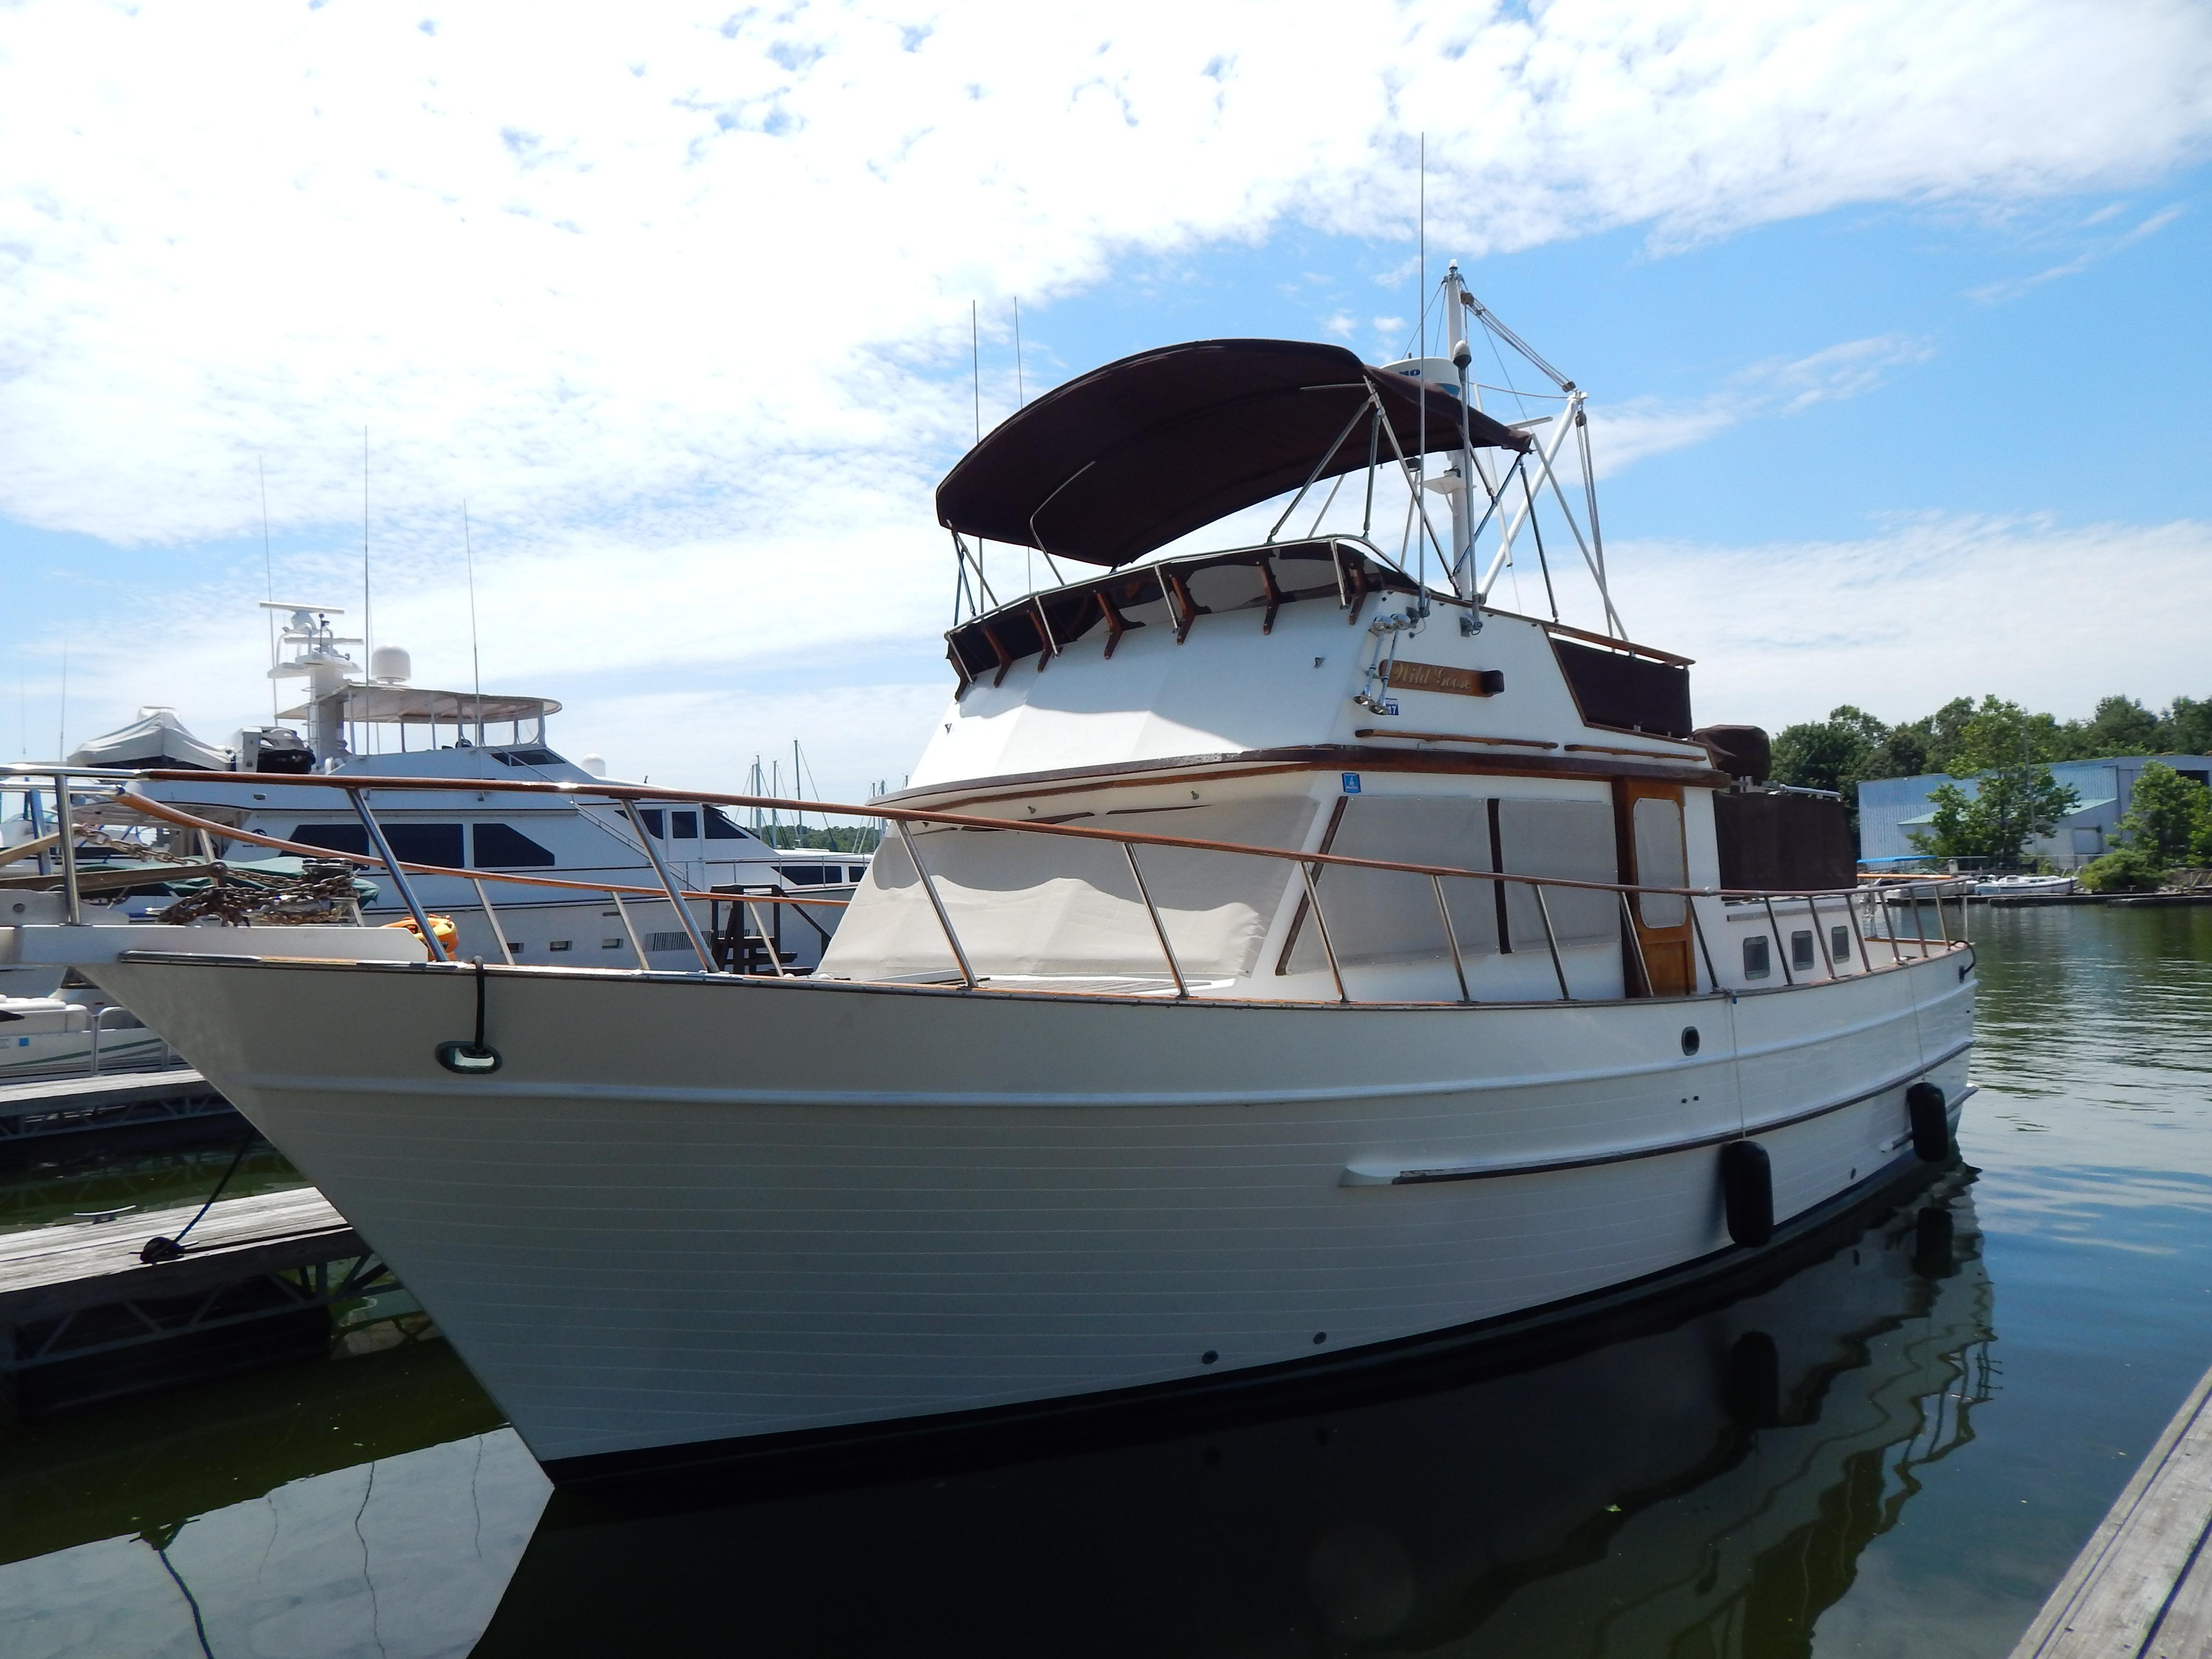 Grand Rivers (KY) United States  city photos : 1989 DeFever 41 Trawler Power Boat For Sale www.yachtworld.com